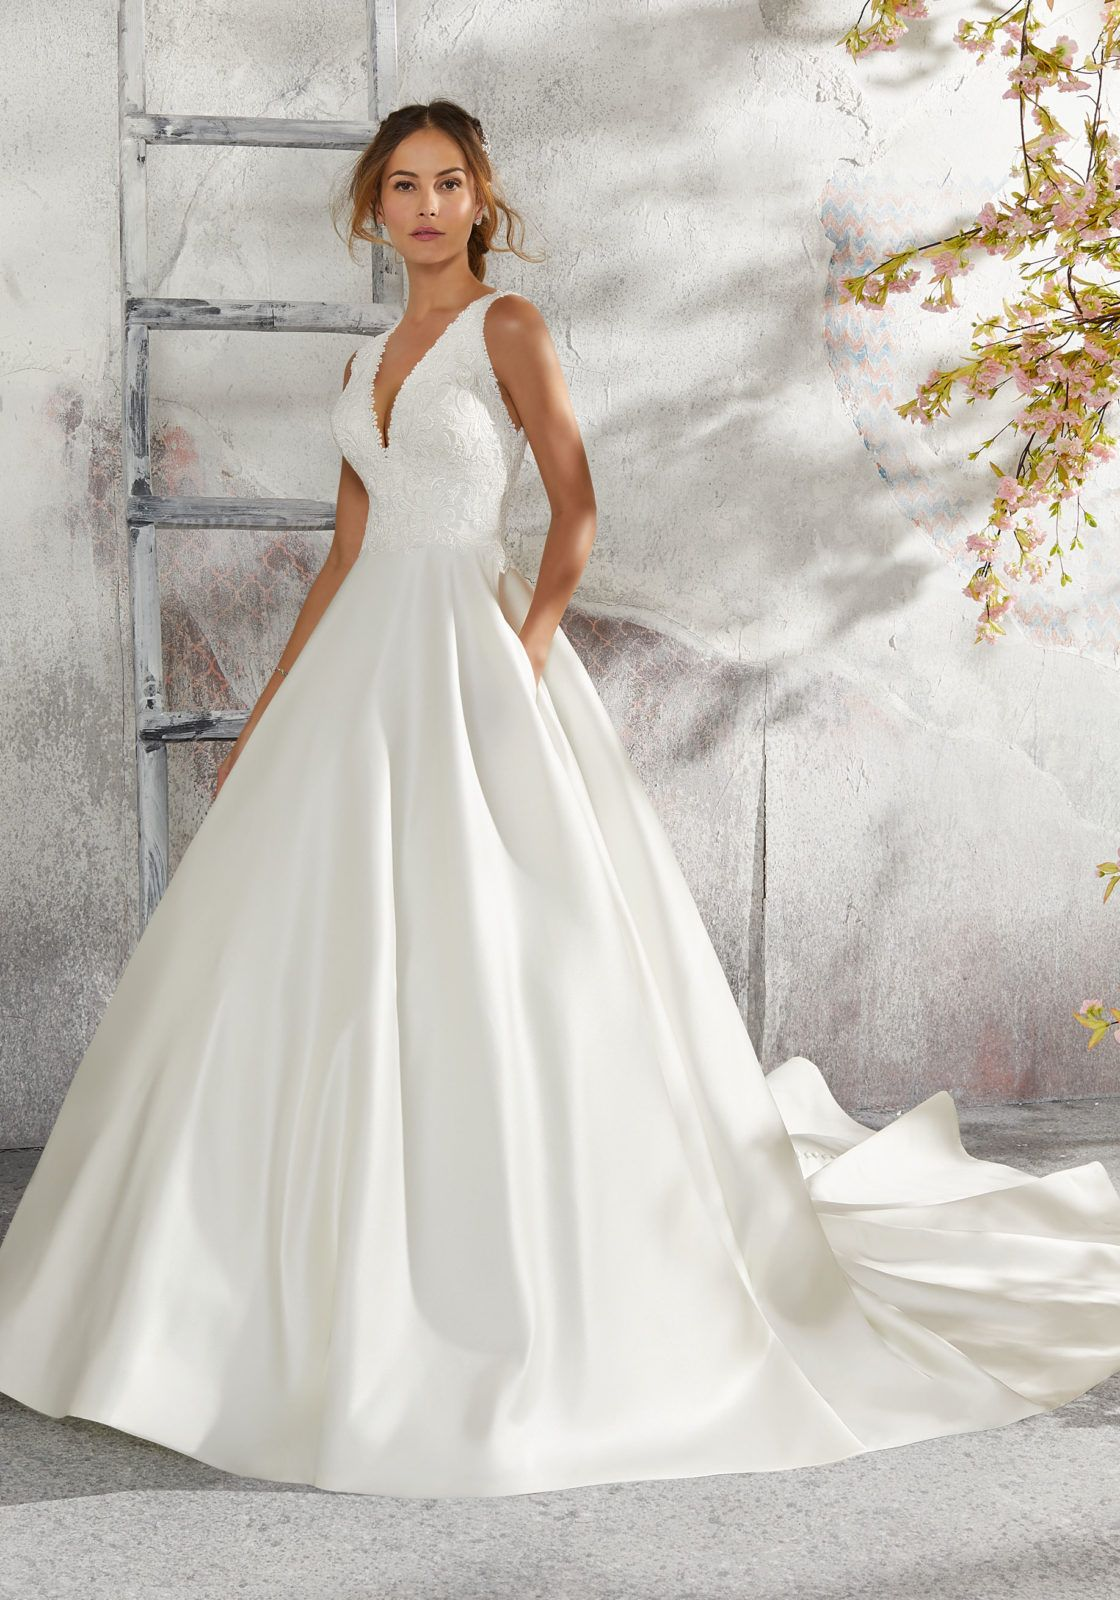 654d8a5ac3aa Style Number: 5684 Laurie Wedding Dress Classic and Timeless, the Full Satin  Ballgown Wedding Dress Features a Deep V-Neckline Bodice Accented in  Frosted ...